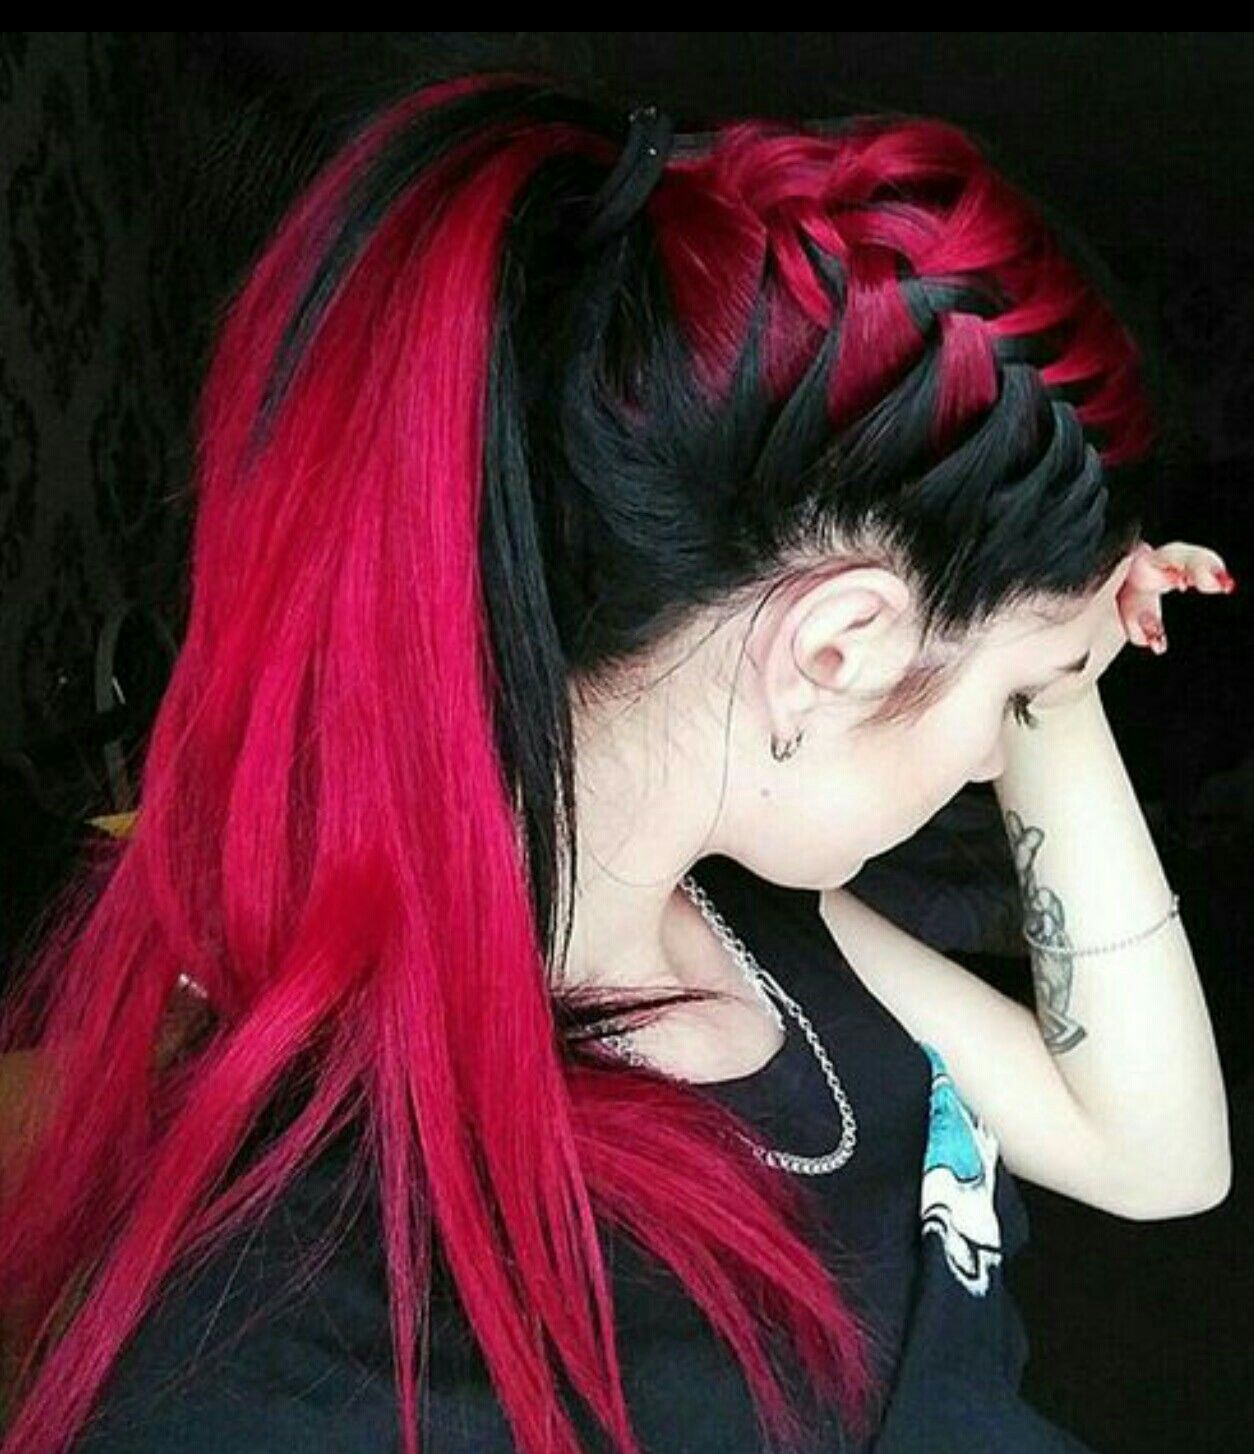 Images about hair colors and styles on pinterest - Dye Hair